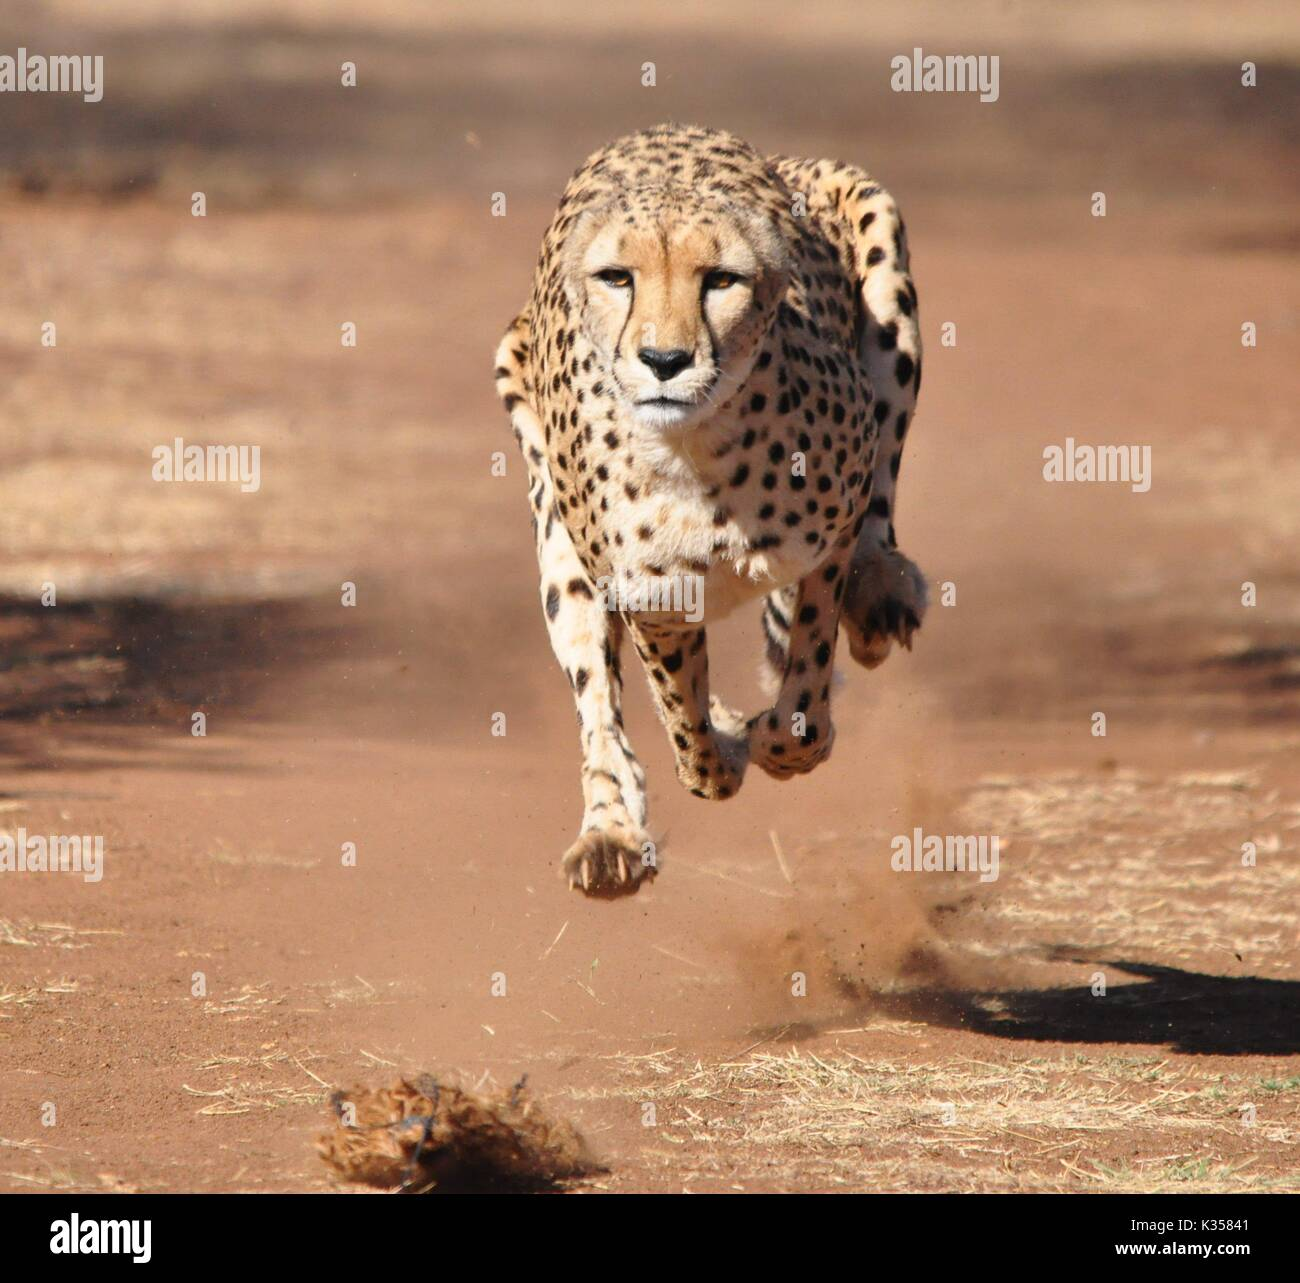 Running cheetah frontal view - Stock Image